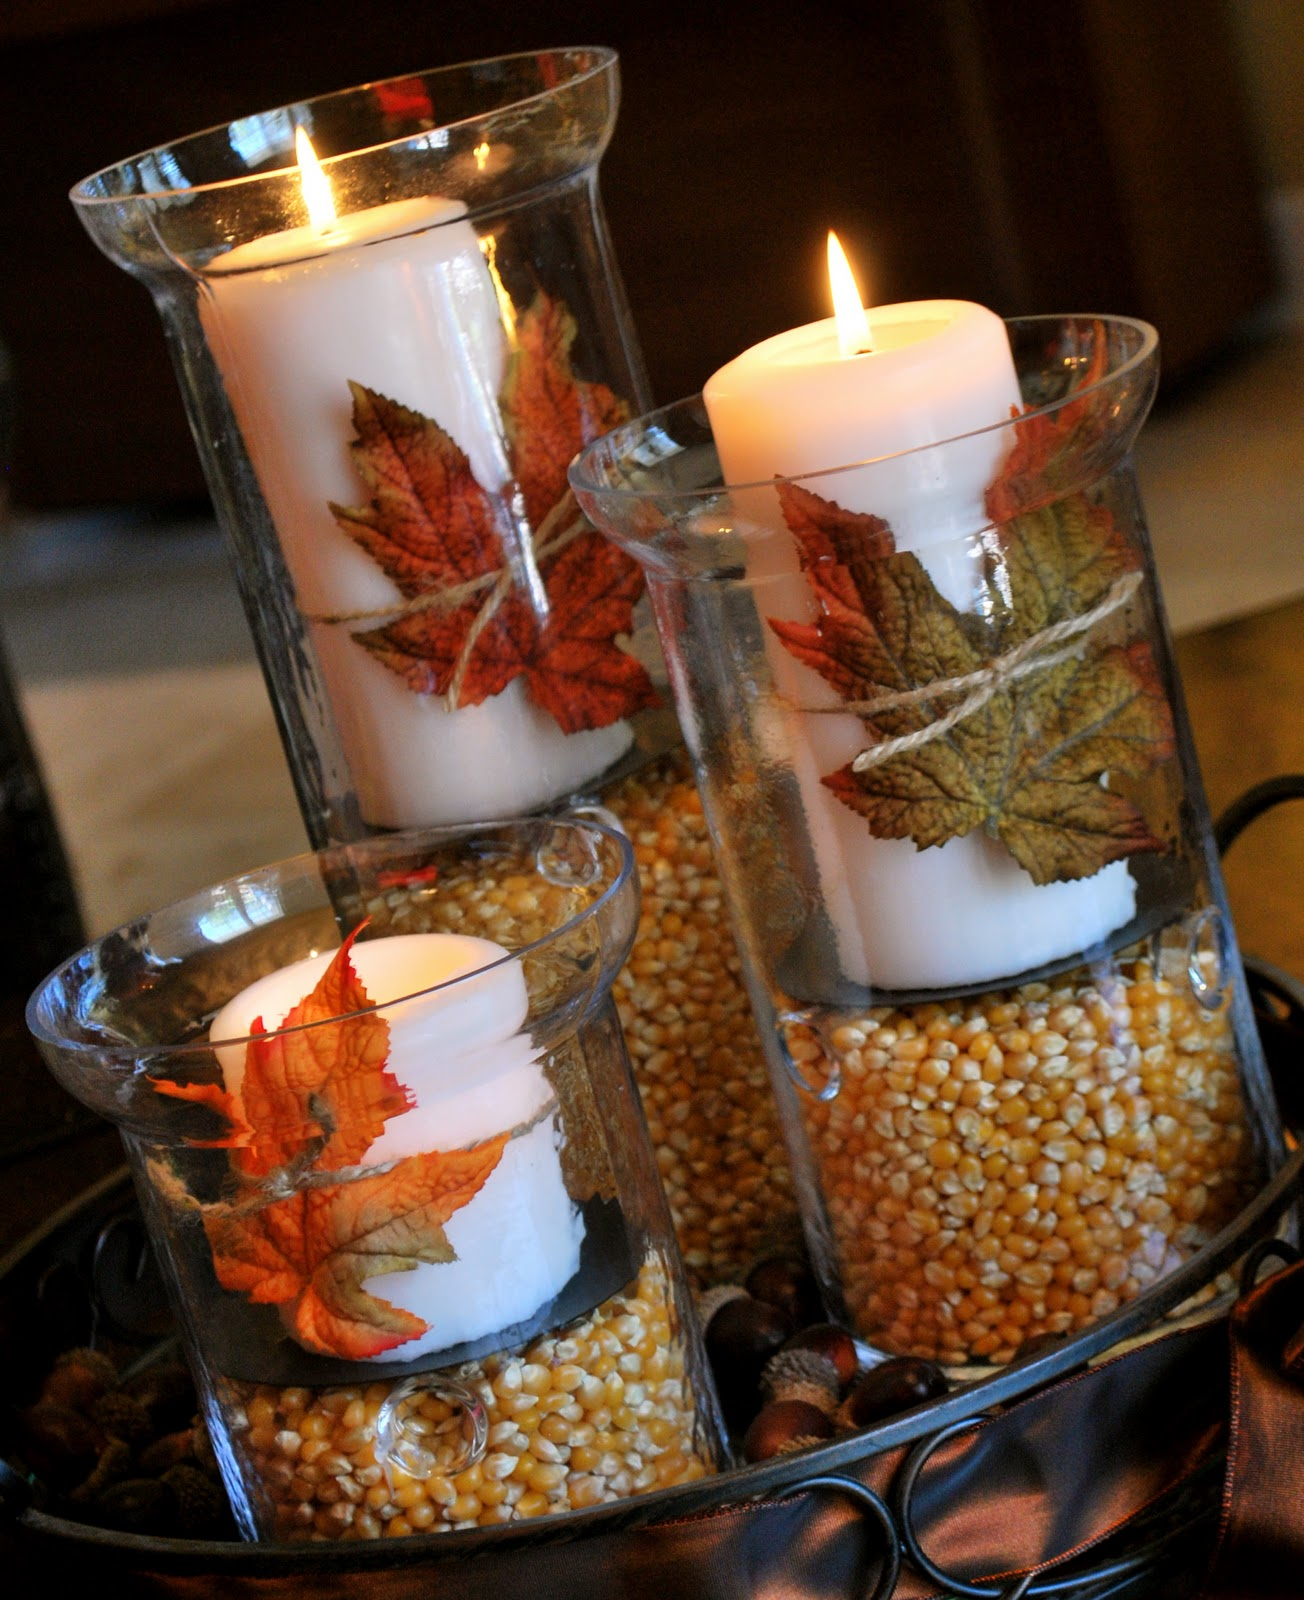 20 Dollar Thanksgiving Decorations Candles In Hurricanes With Popcorn Kernels And Wred Leaves Twine